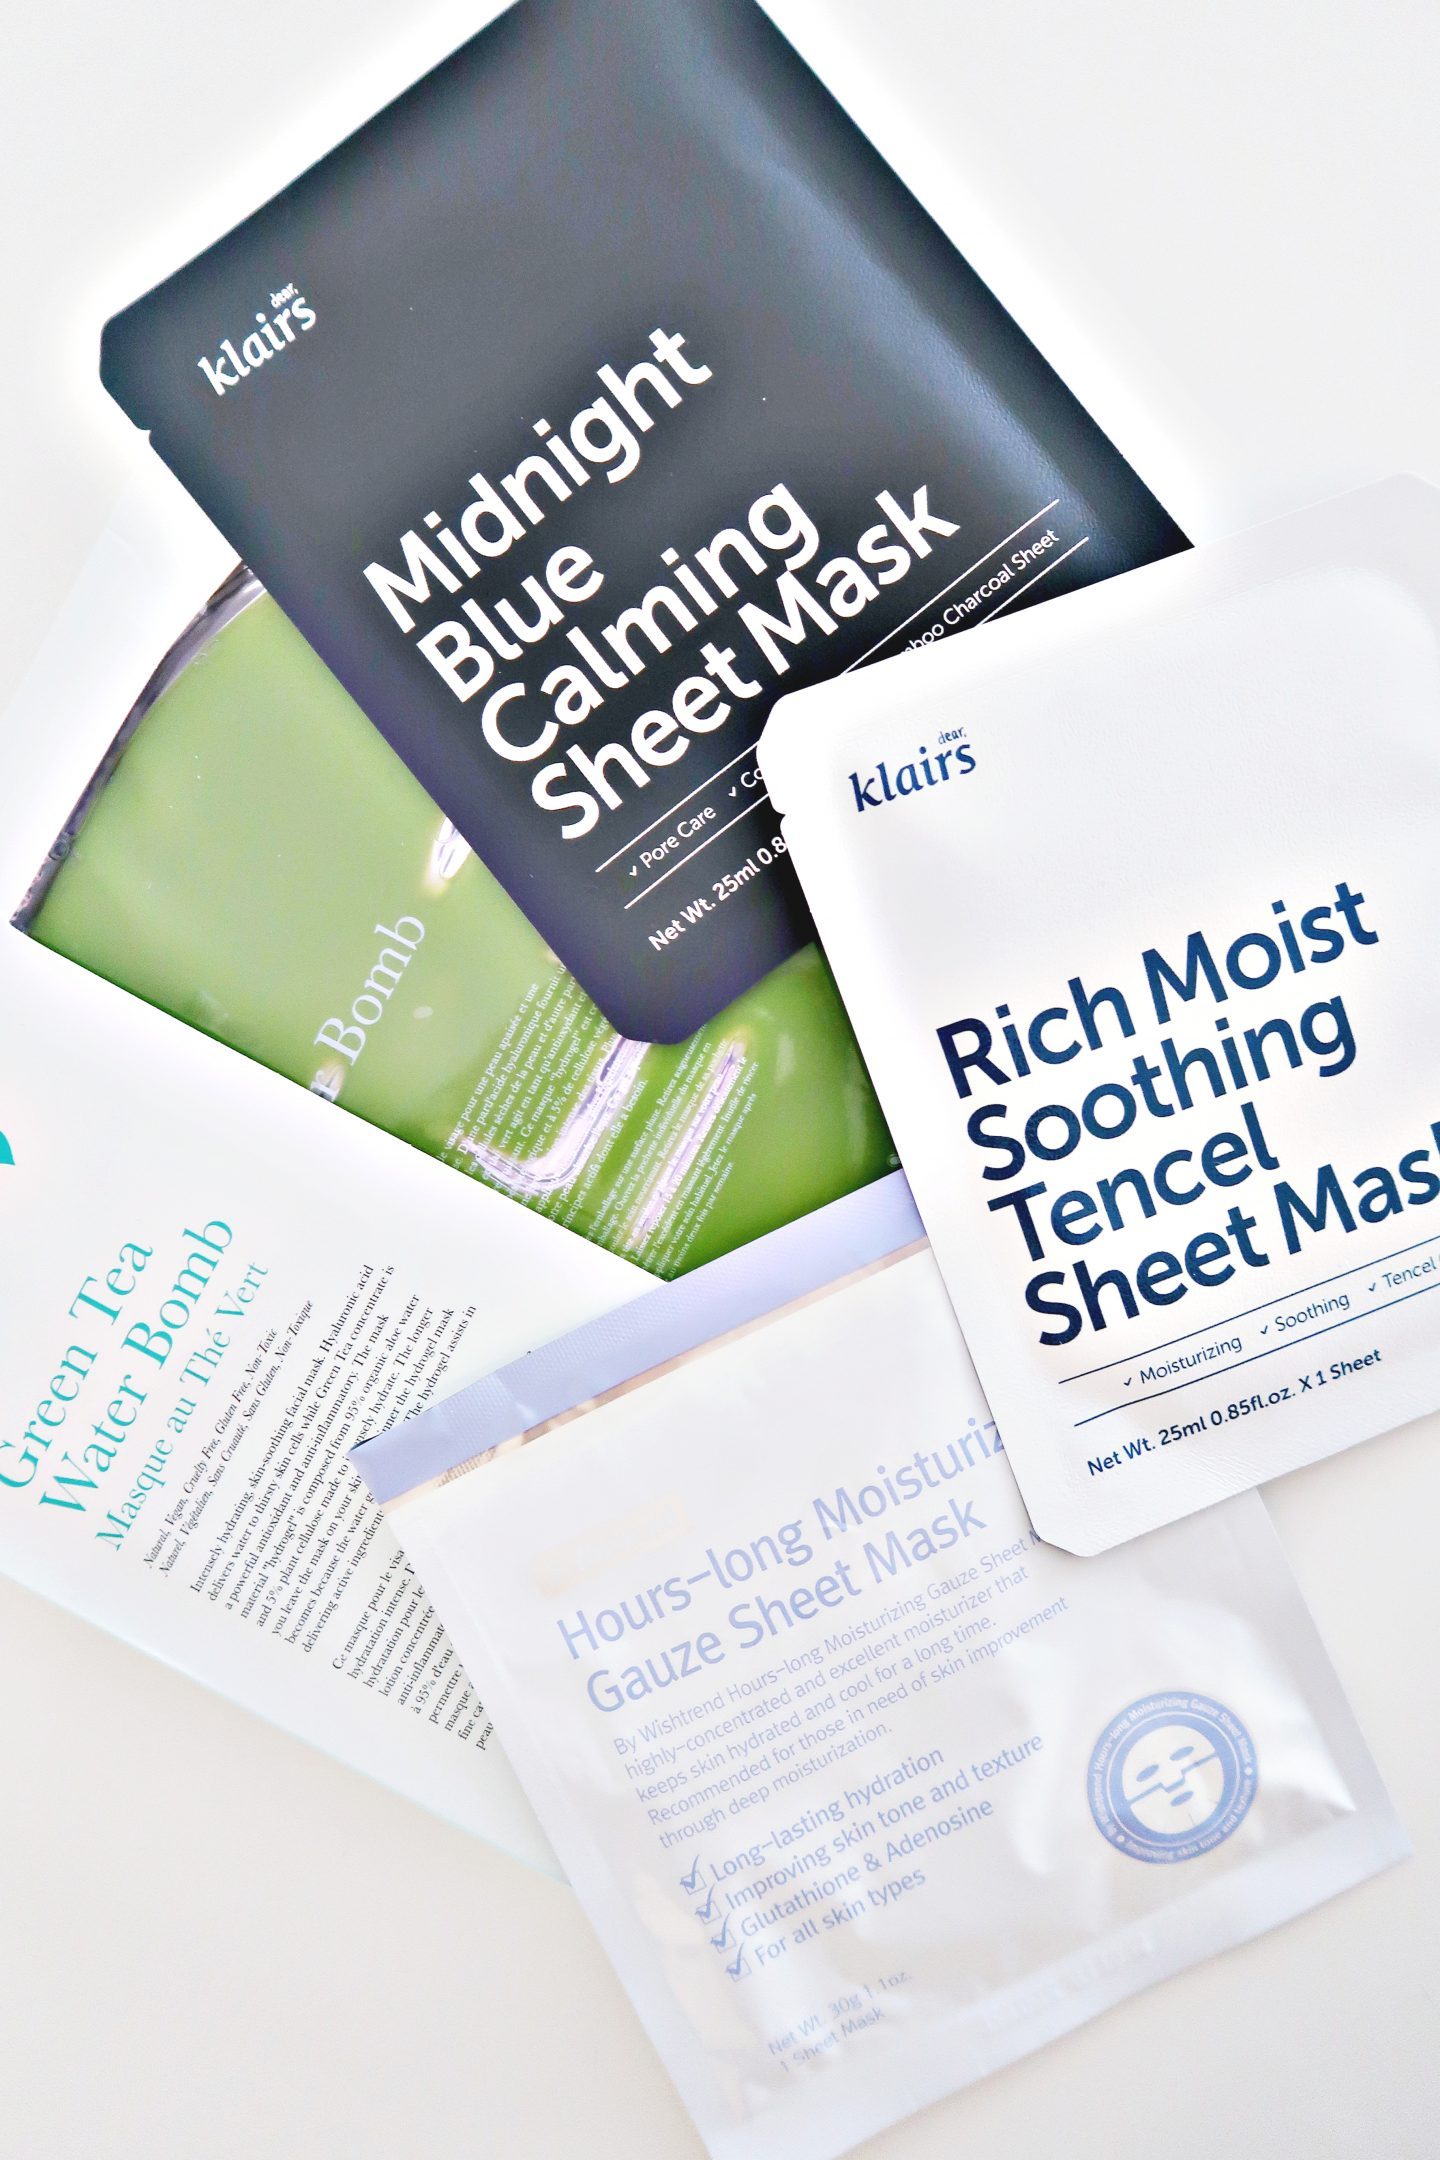 My Top 4 Holy Grail Sheet Masks